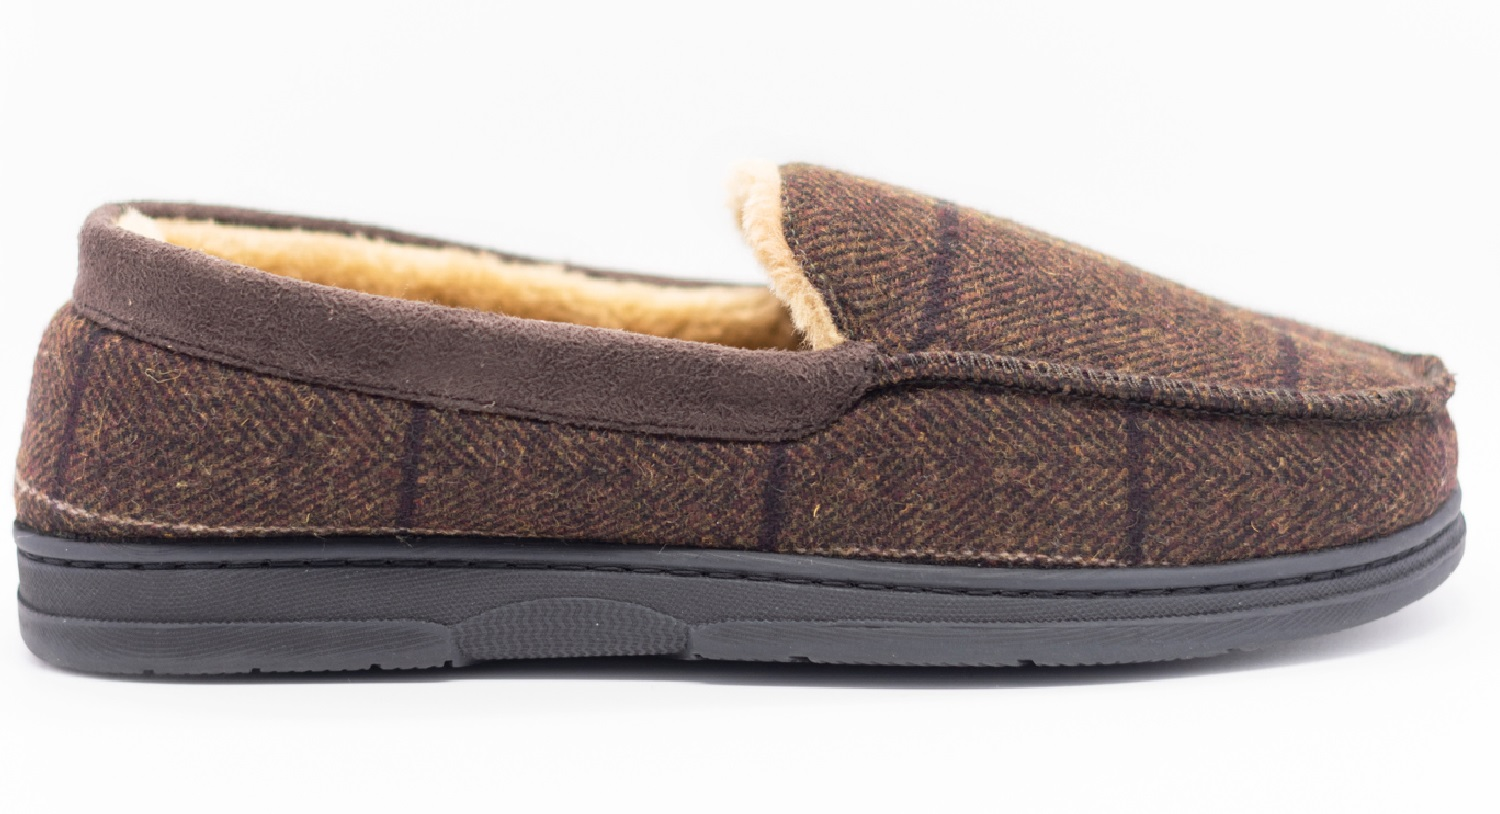 thumbnail 8 - MENS CHECK WARM MOCCASINS FAUX SUEDE SHEEPSKIN FUR LINED WINTER SLIPPERS SHOES